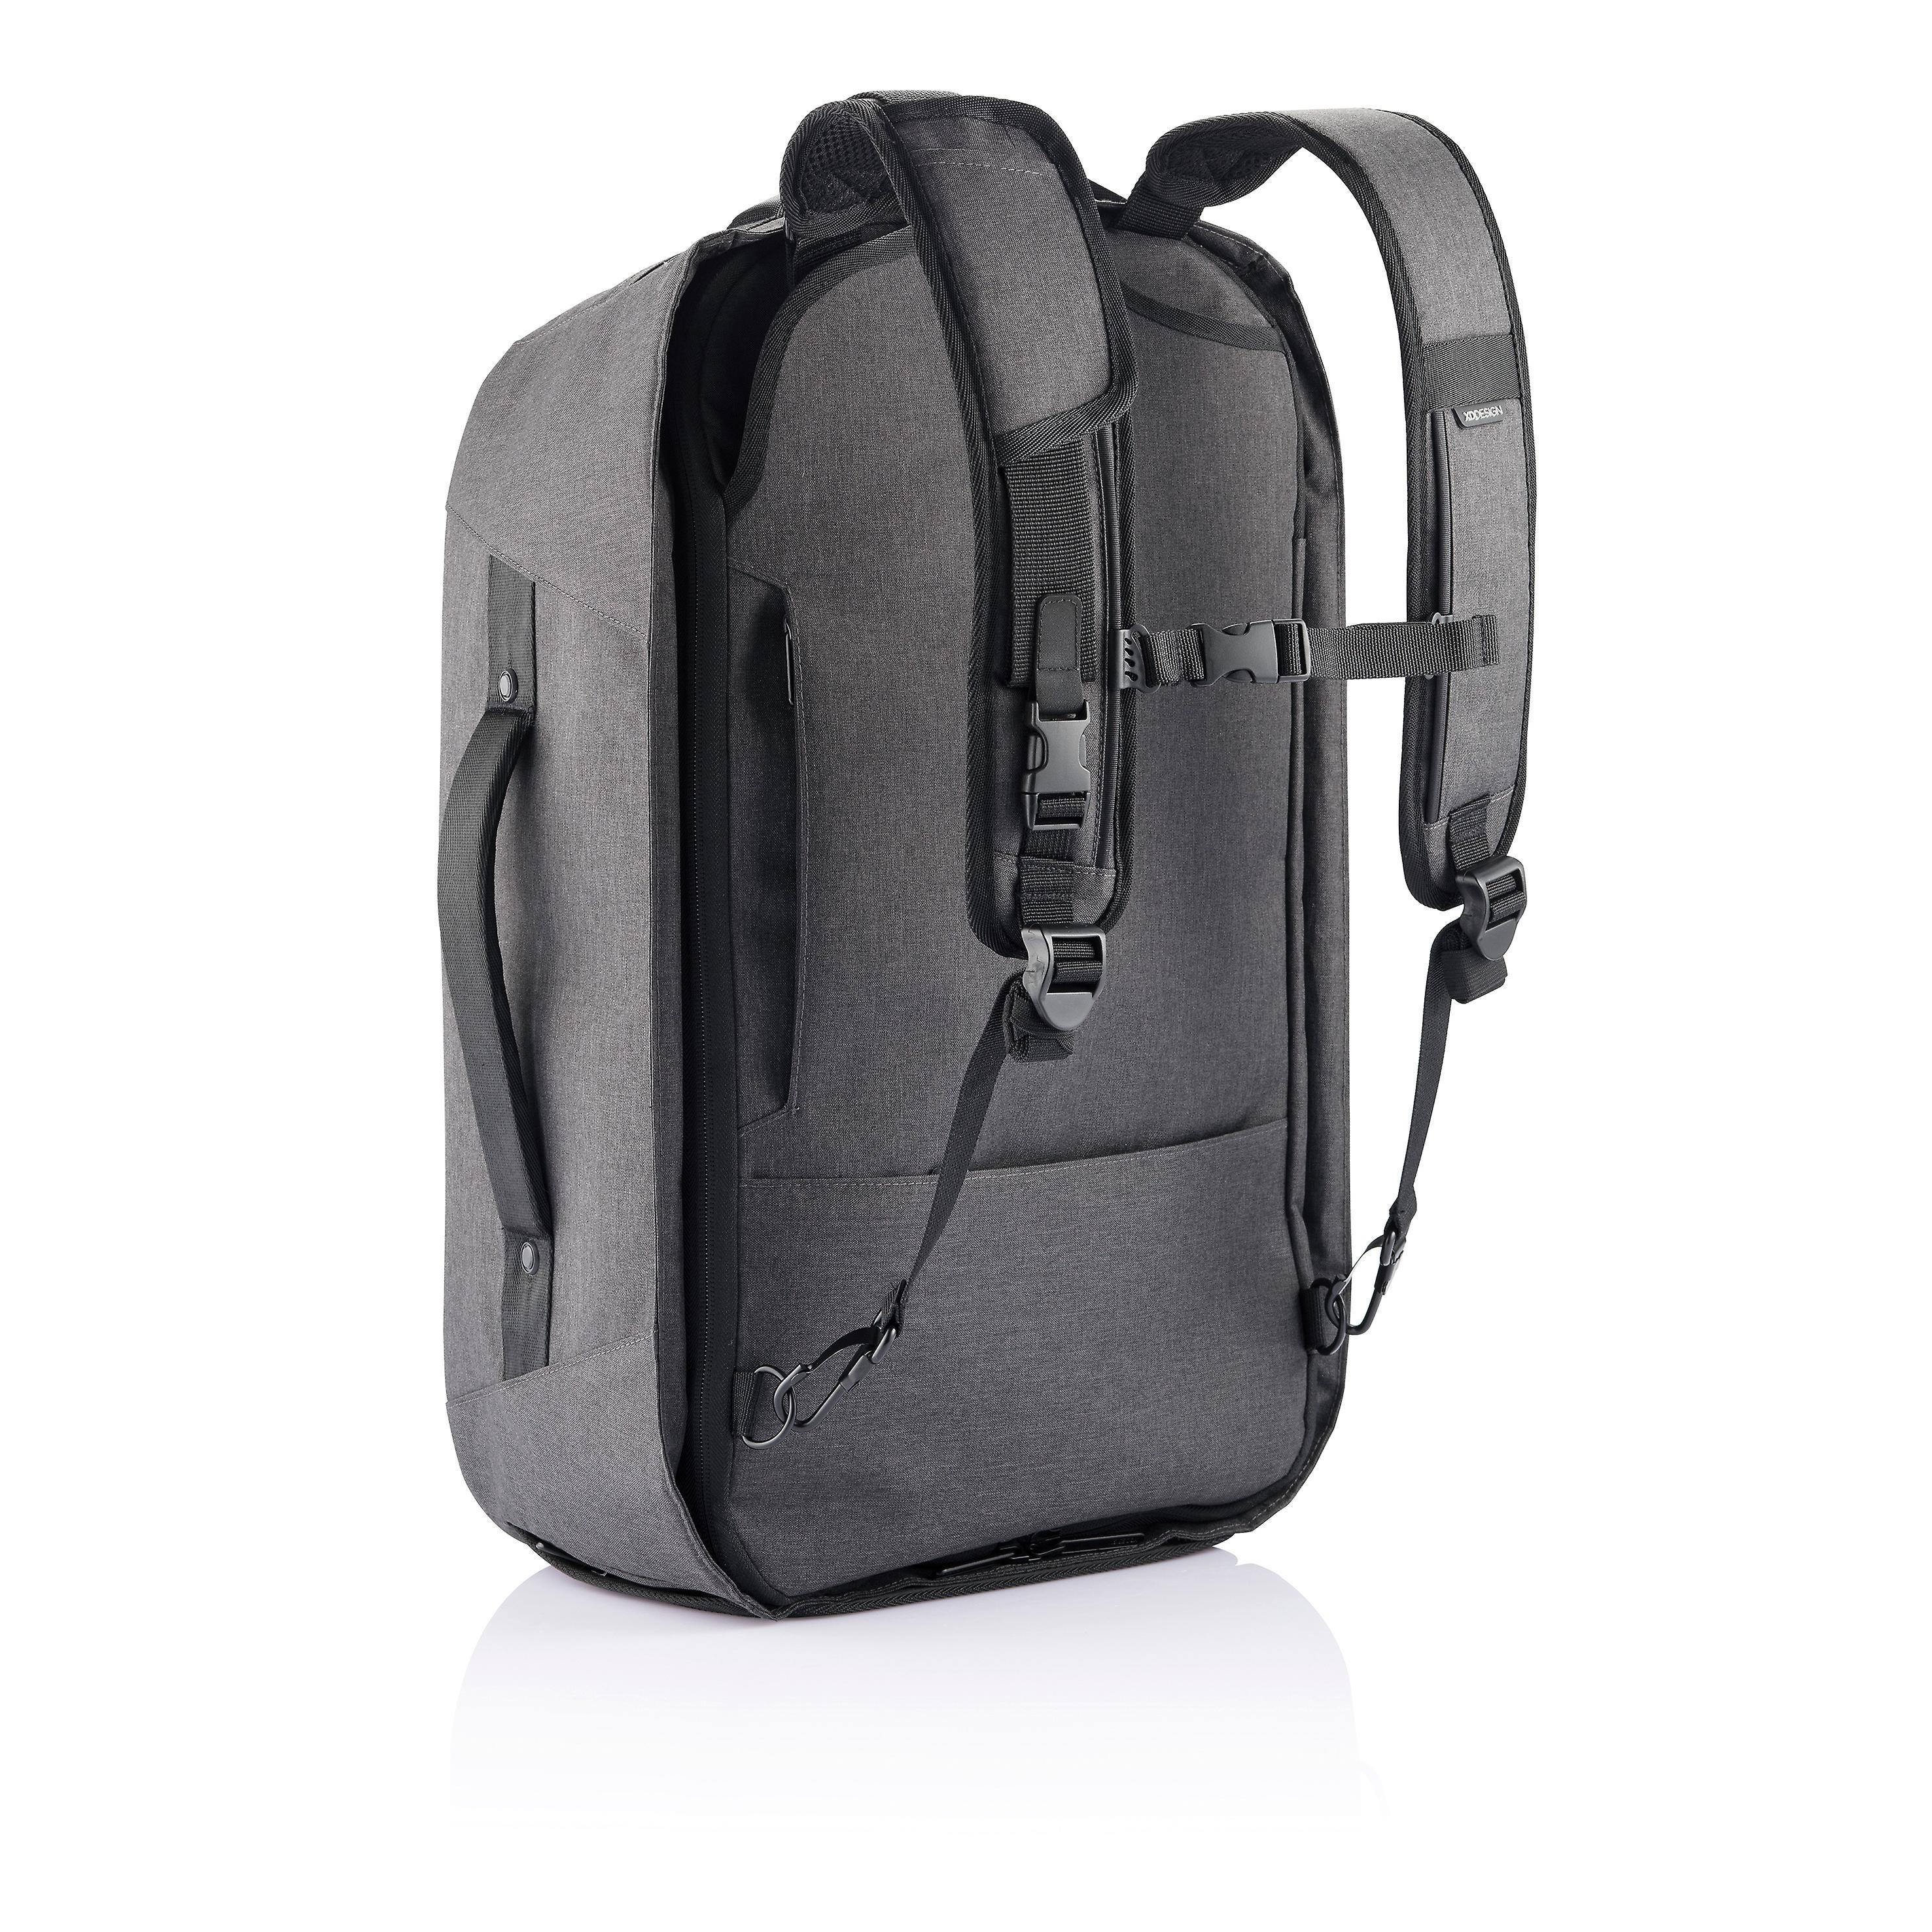 XD Design Bobby Duffle 30L Weekender Anti-Theft Travel Backpack Black